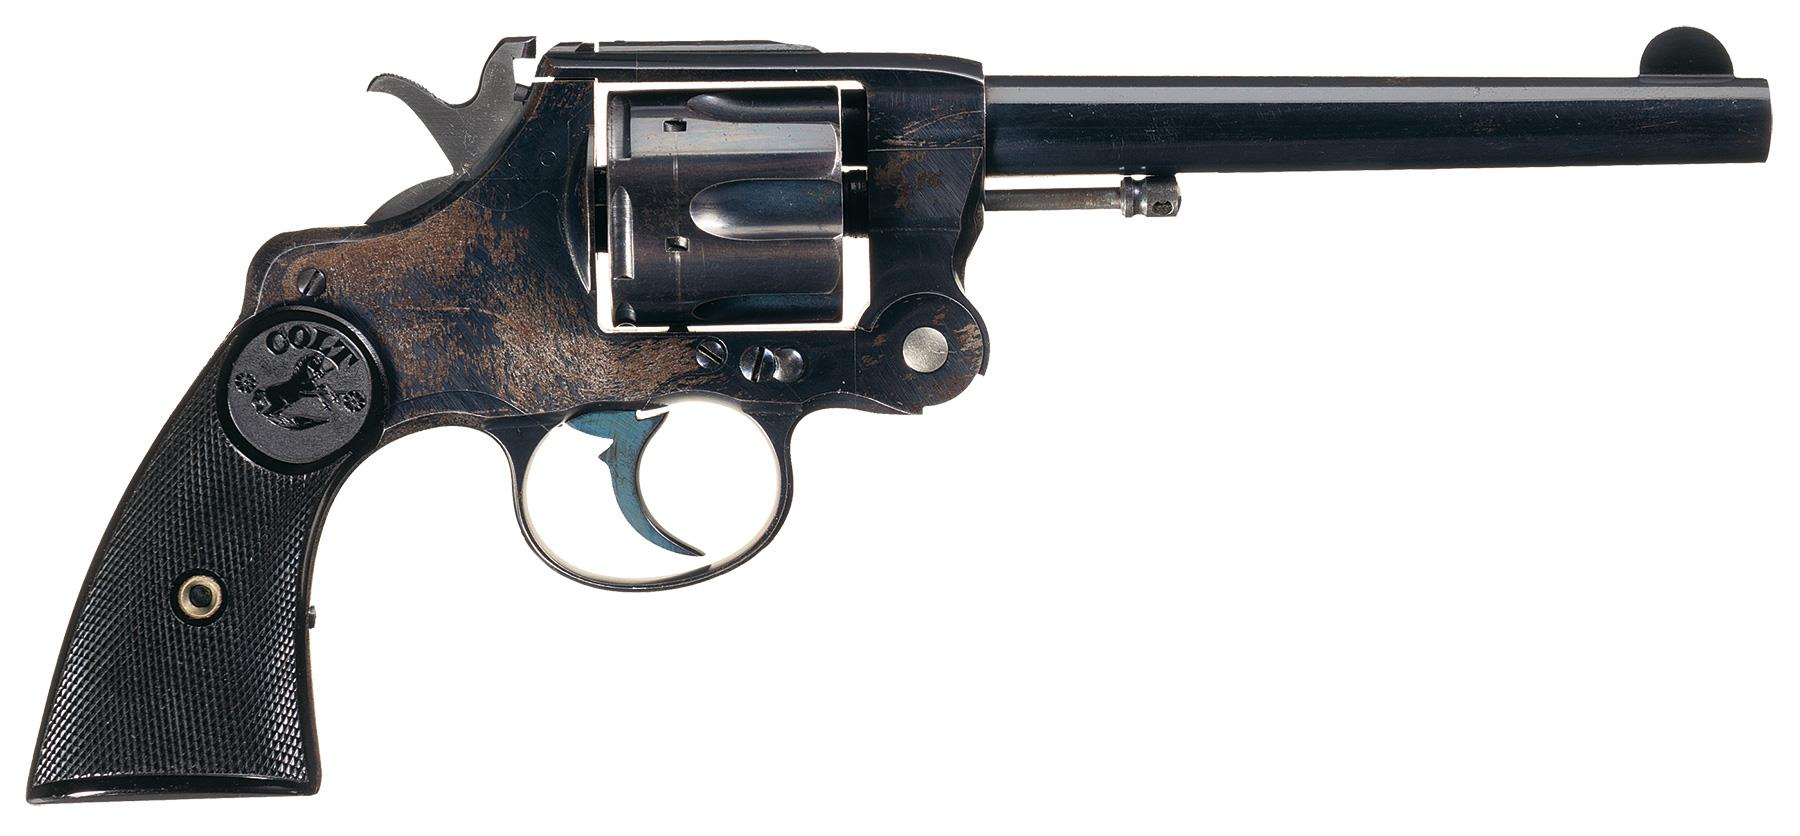 There appears to be some scratching and rust visible in this photograph of the right side of the revolver.